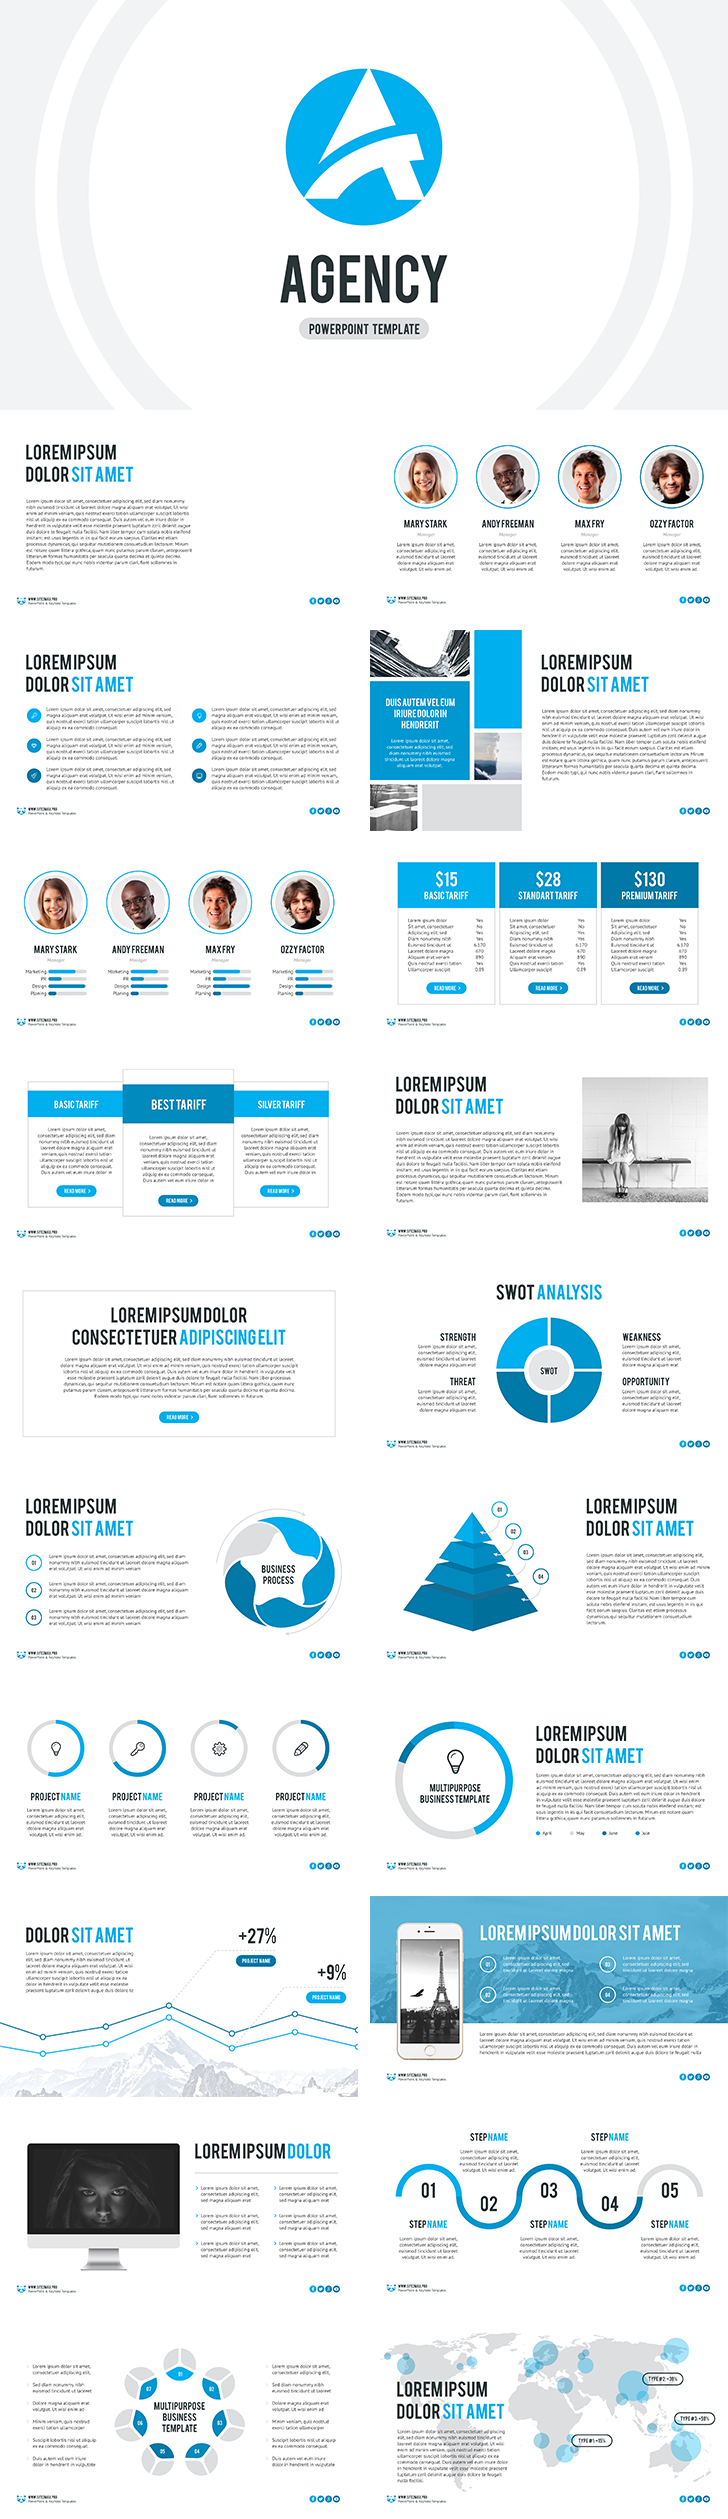 Agency free powerpoint template download free no longer need to look for just download agency free powerpoint template for free and without registration toneelgroepblik Images